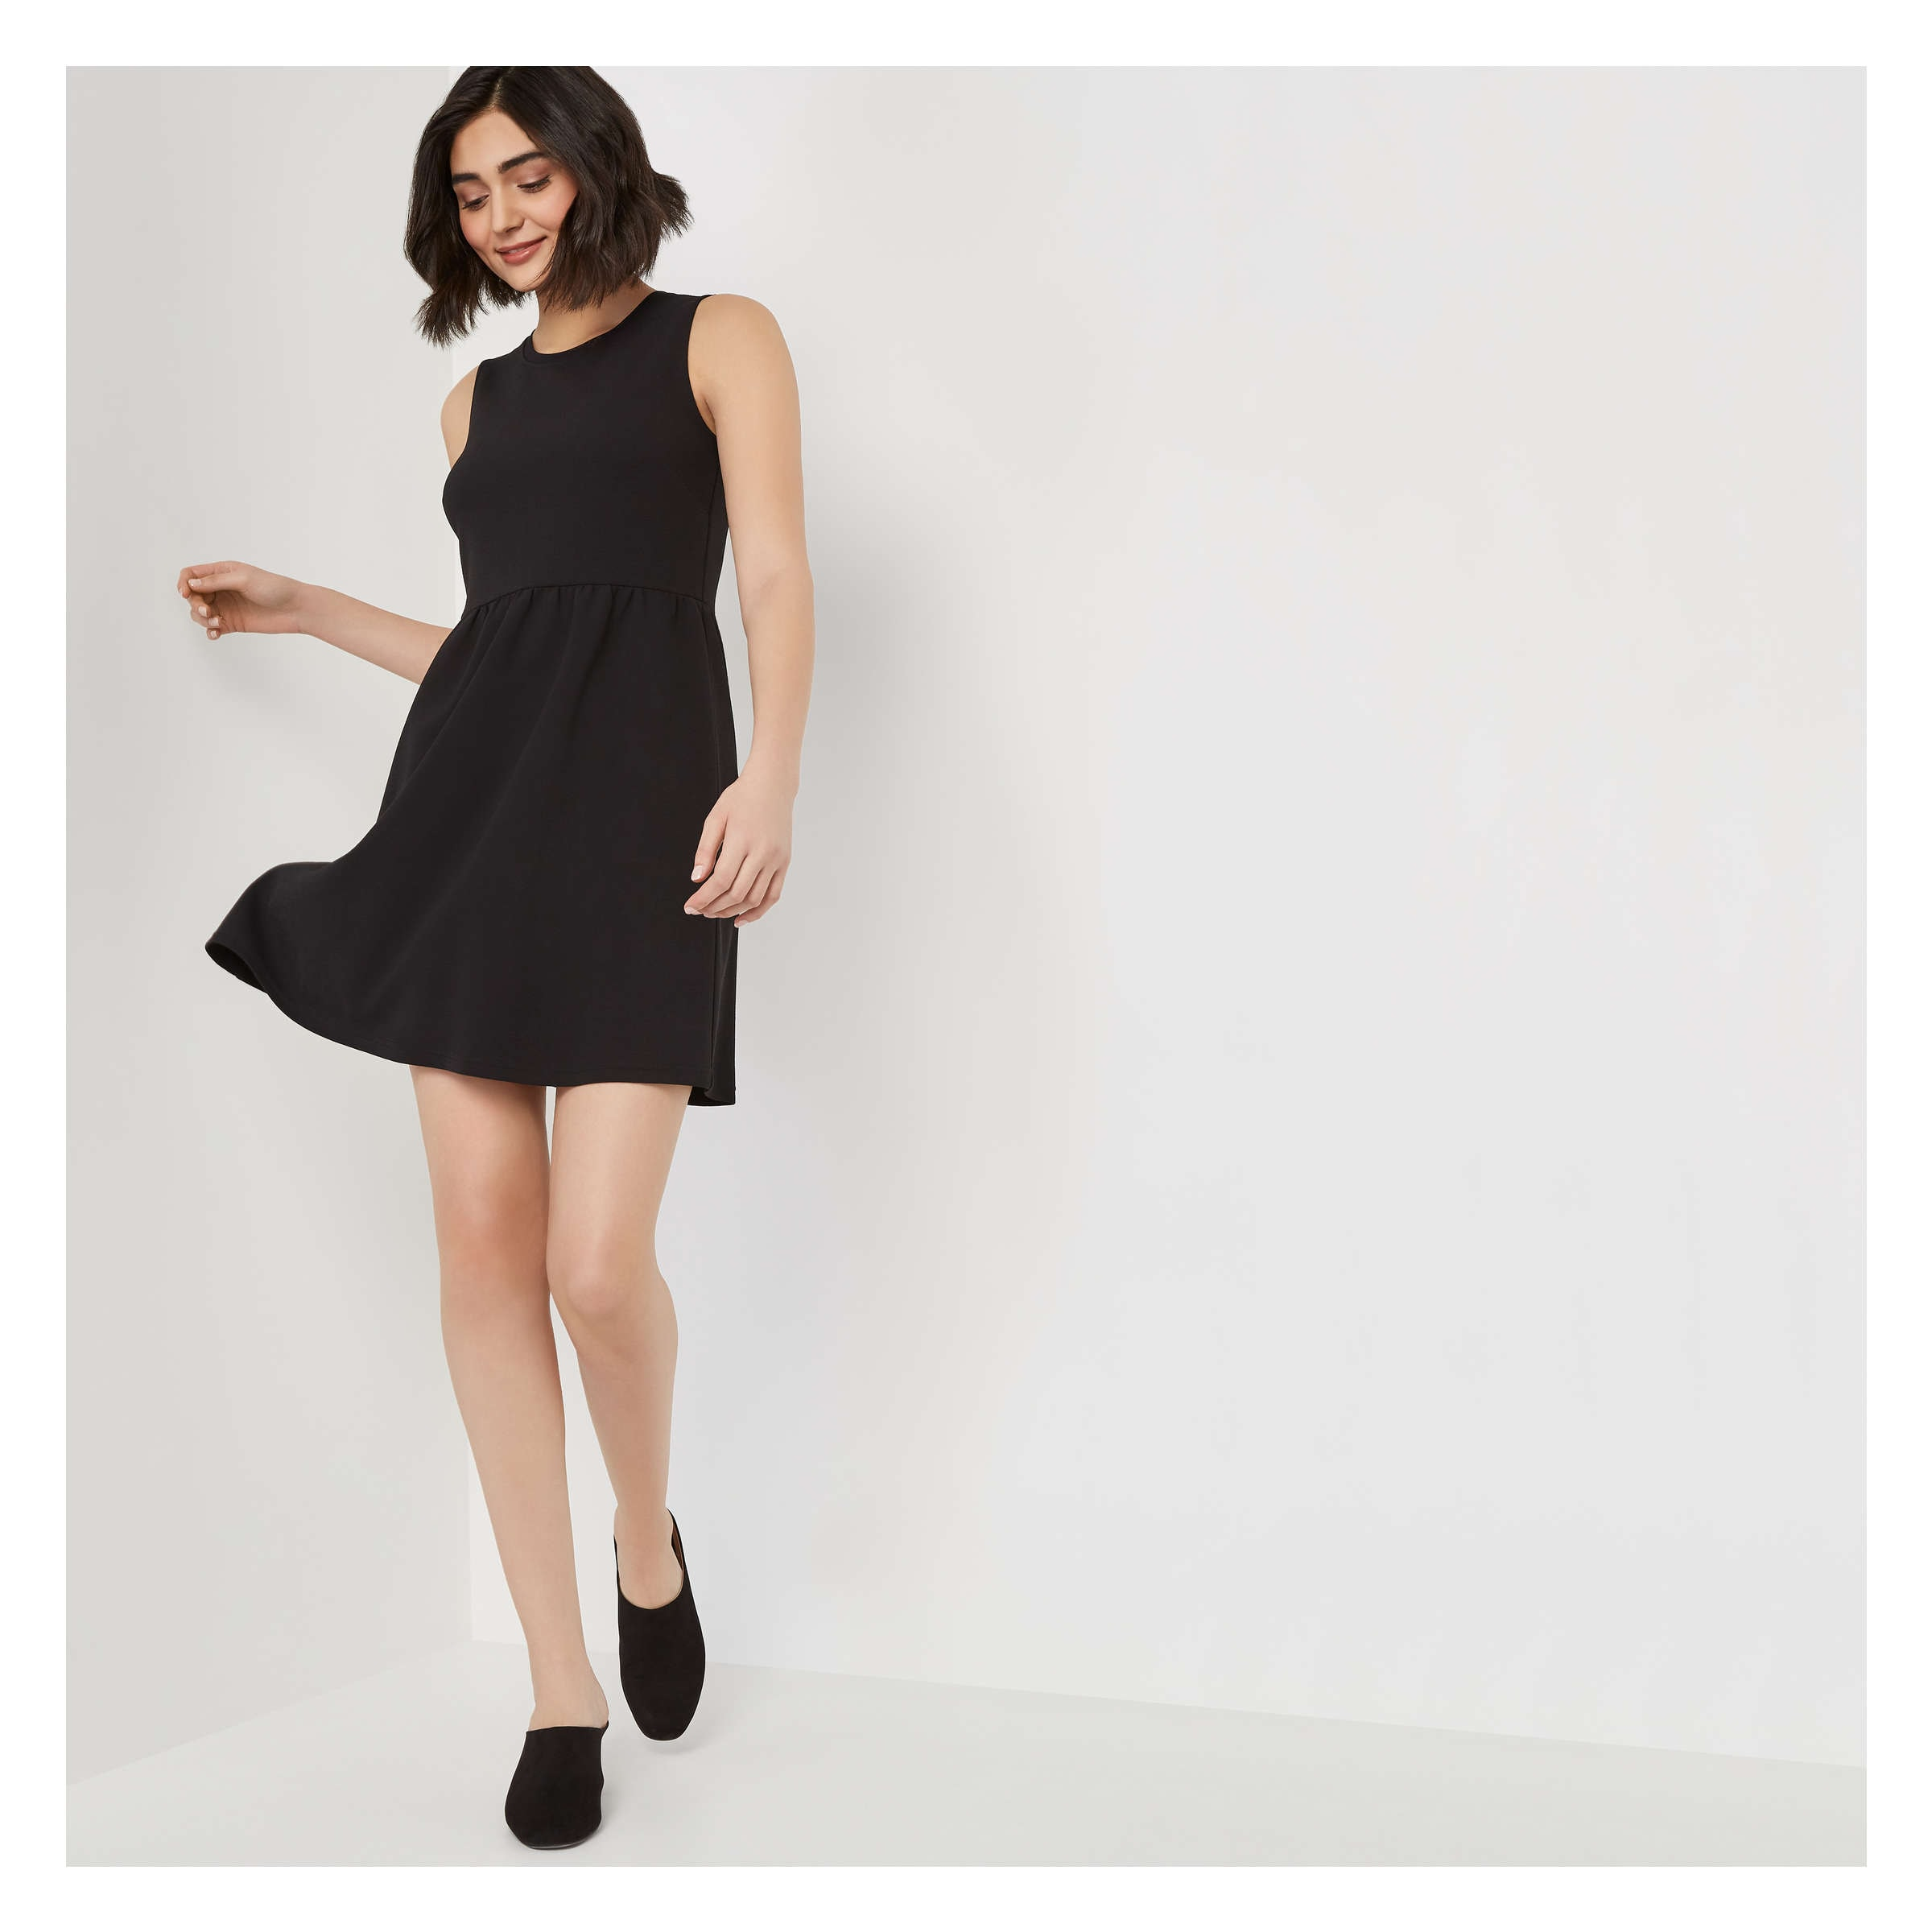 e232f3c4733f Textured Knit Dress in JF Black from Joe Fresh